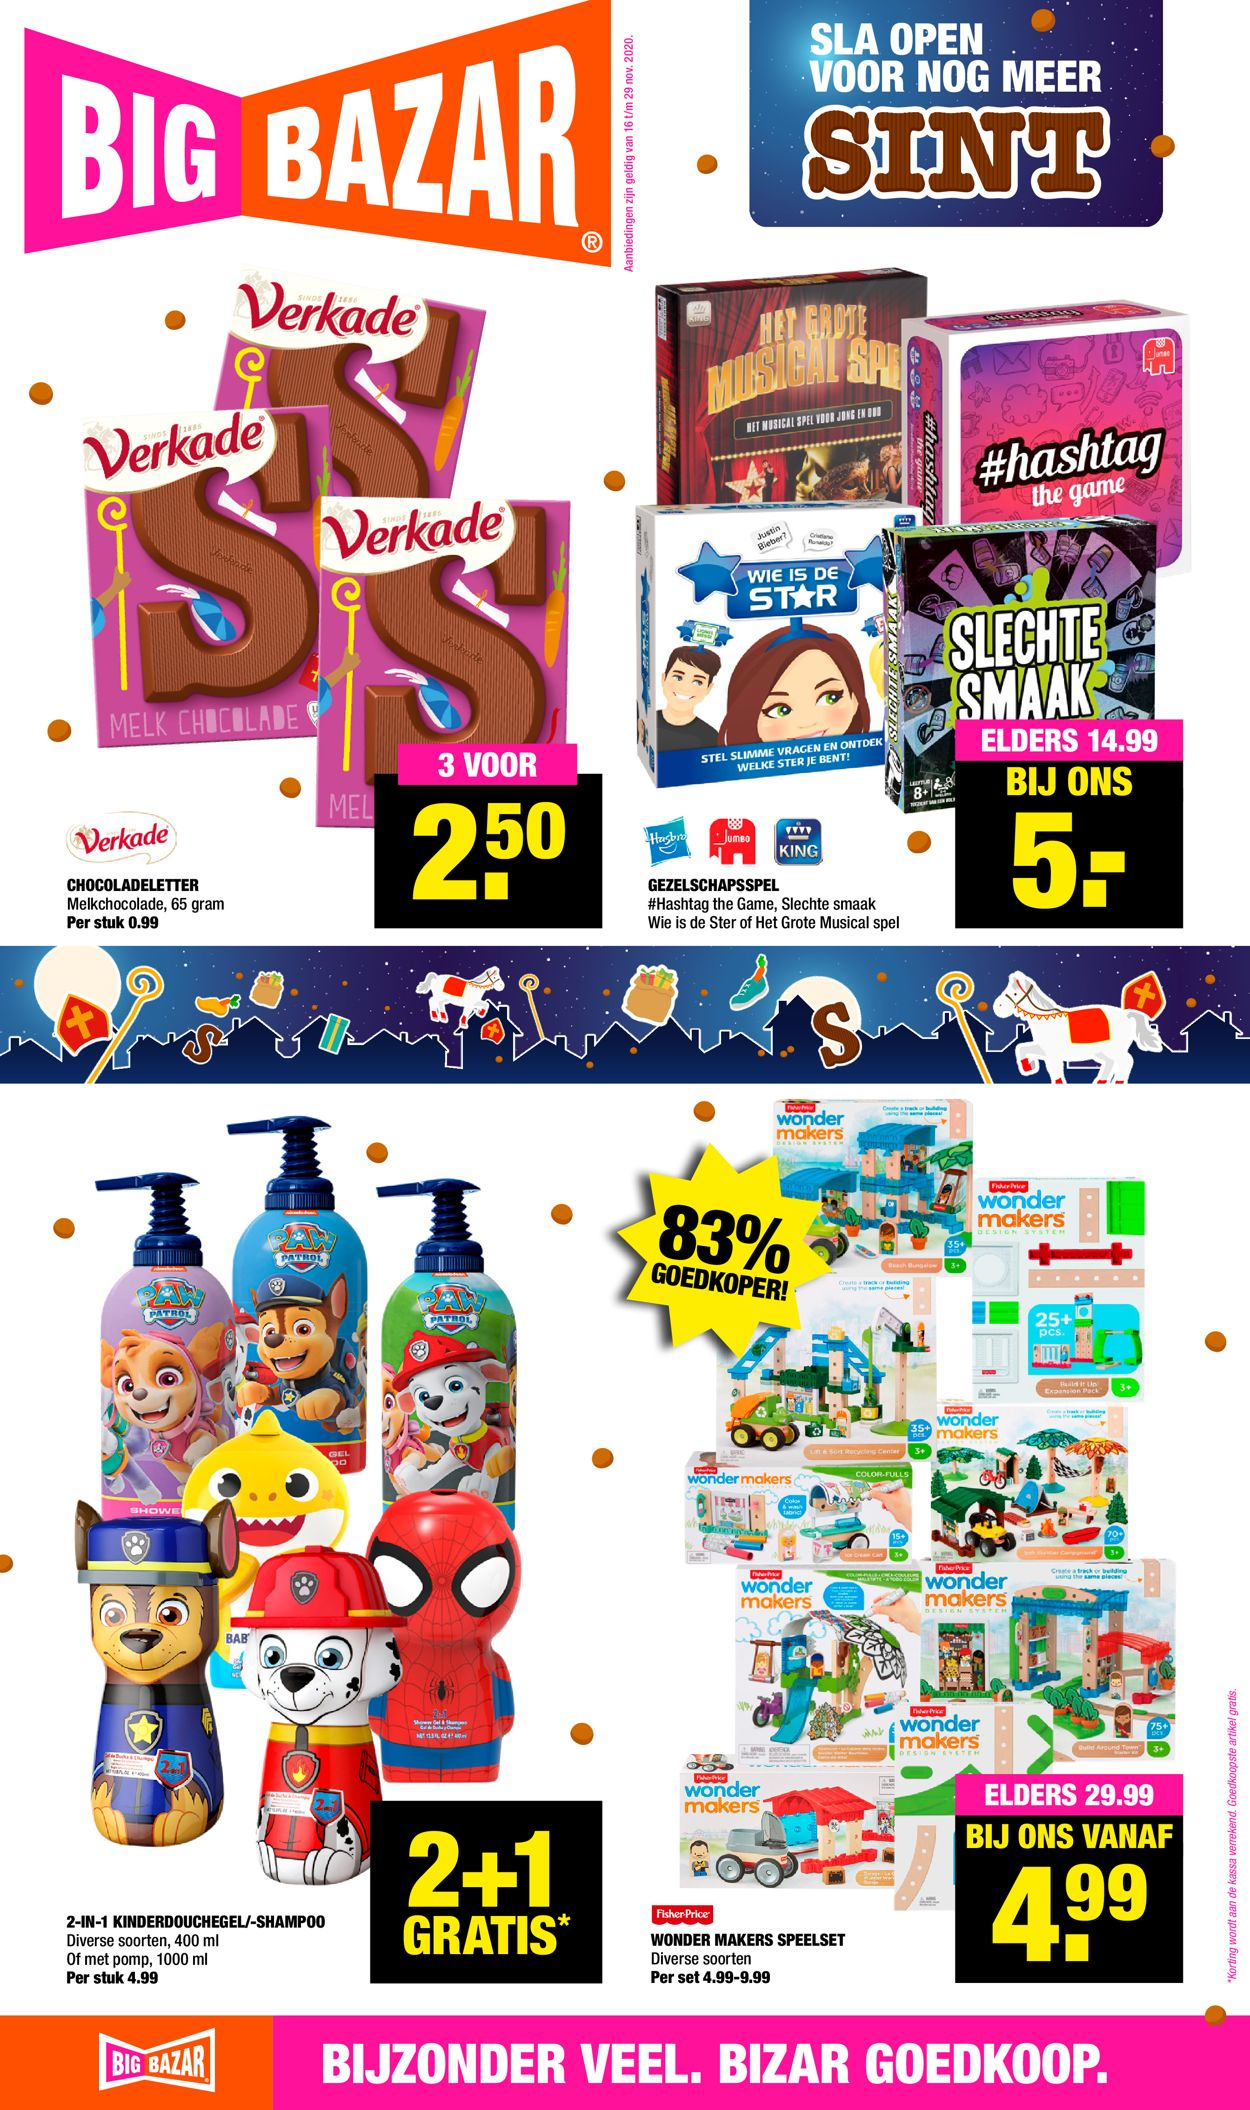 Catalogus van Big Bazar - Black Friday 2020 van 16.11.2020